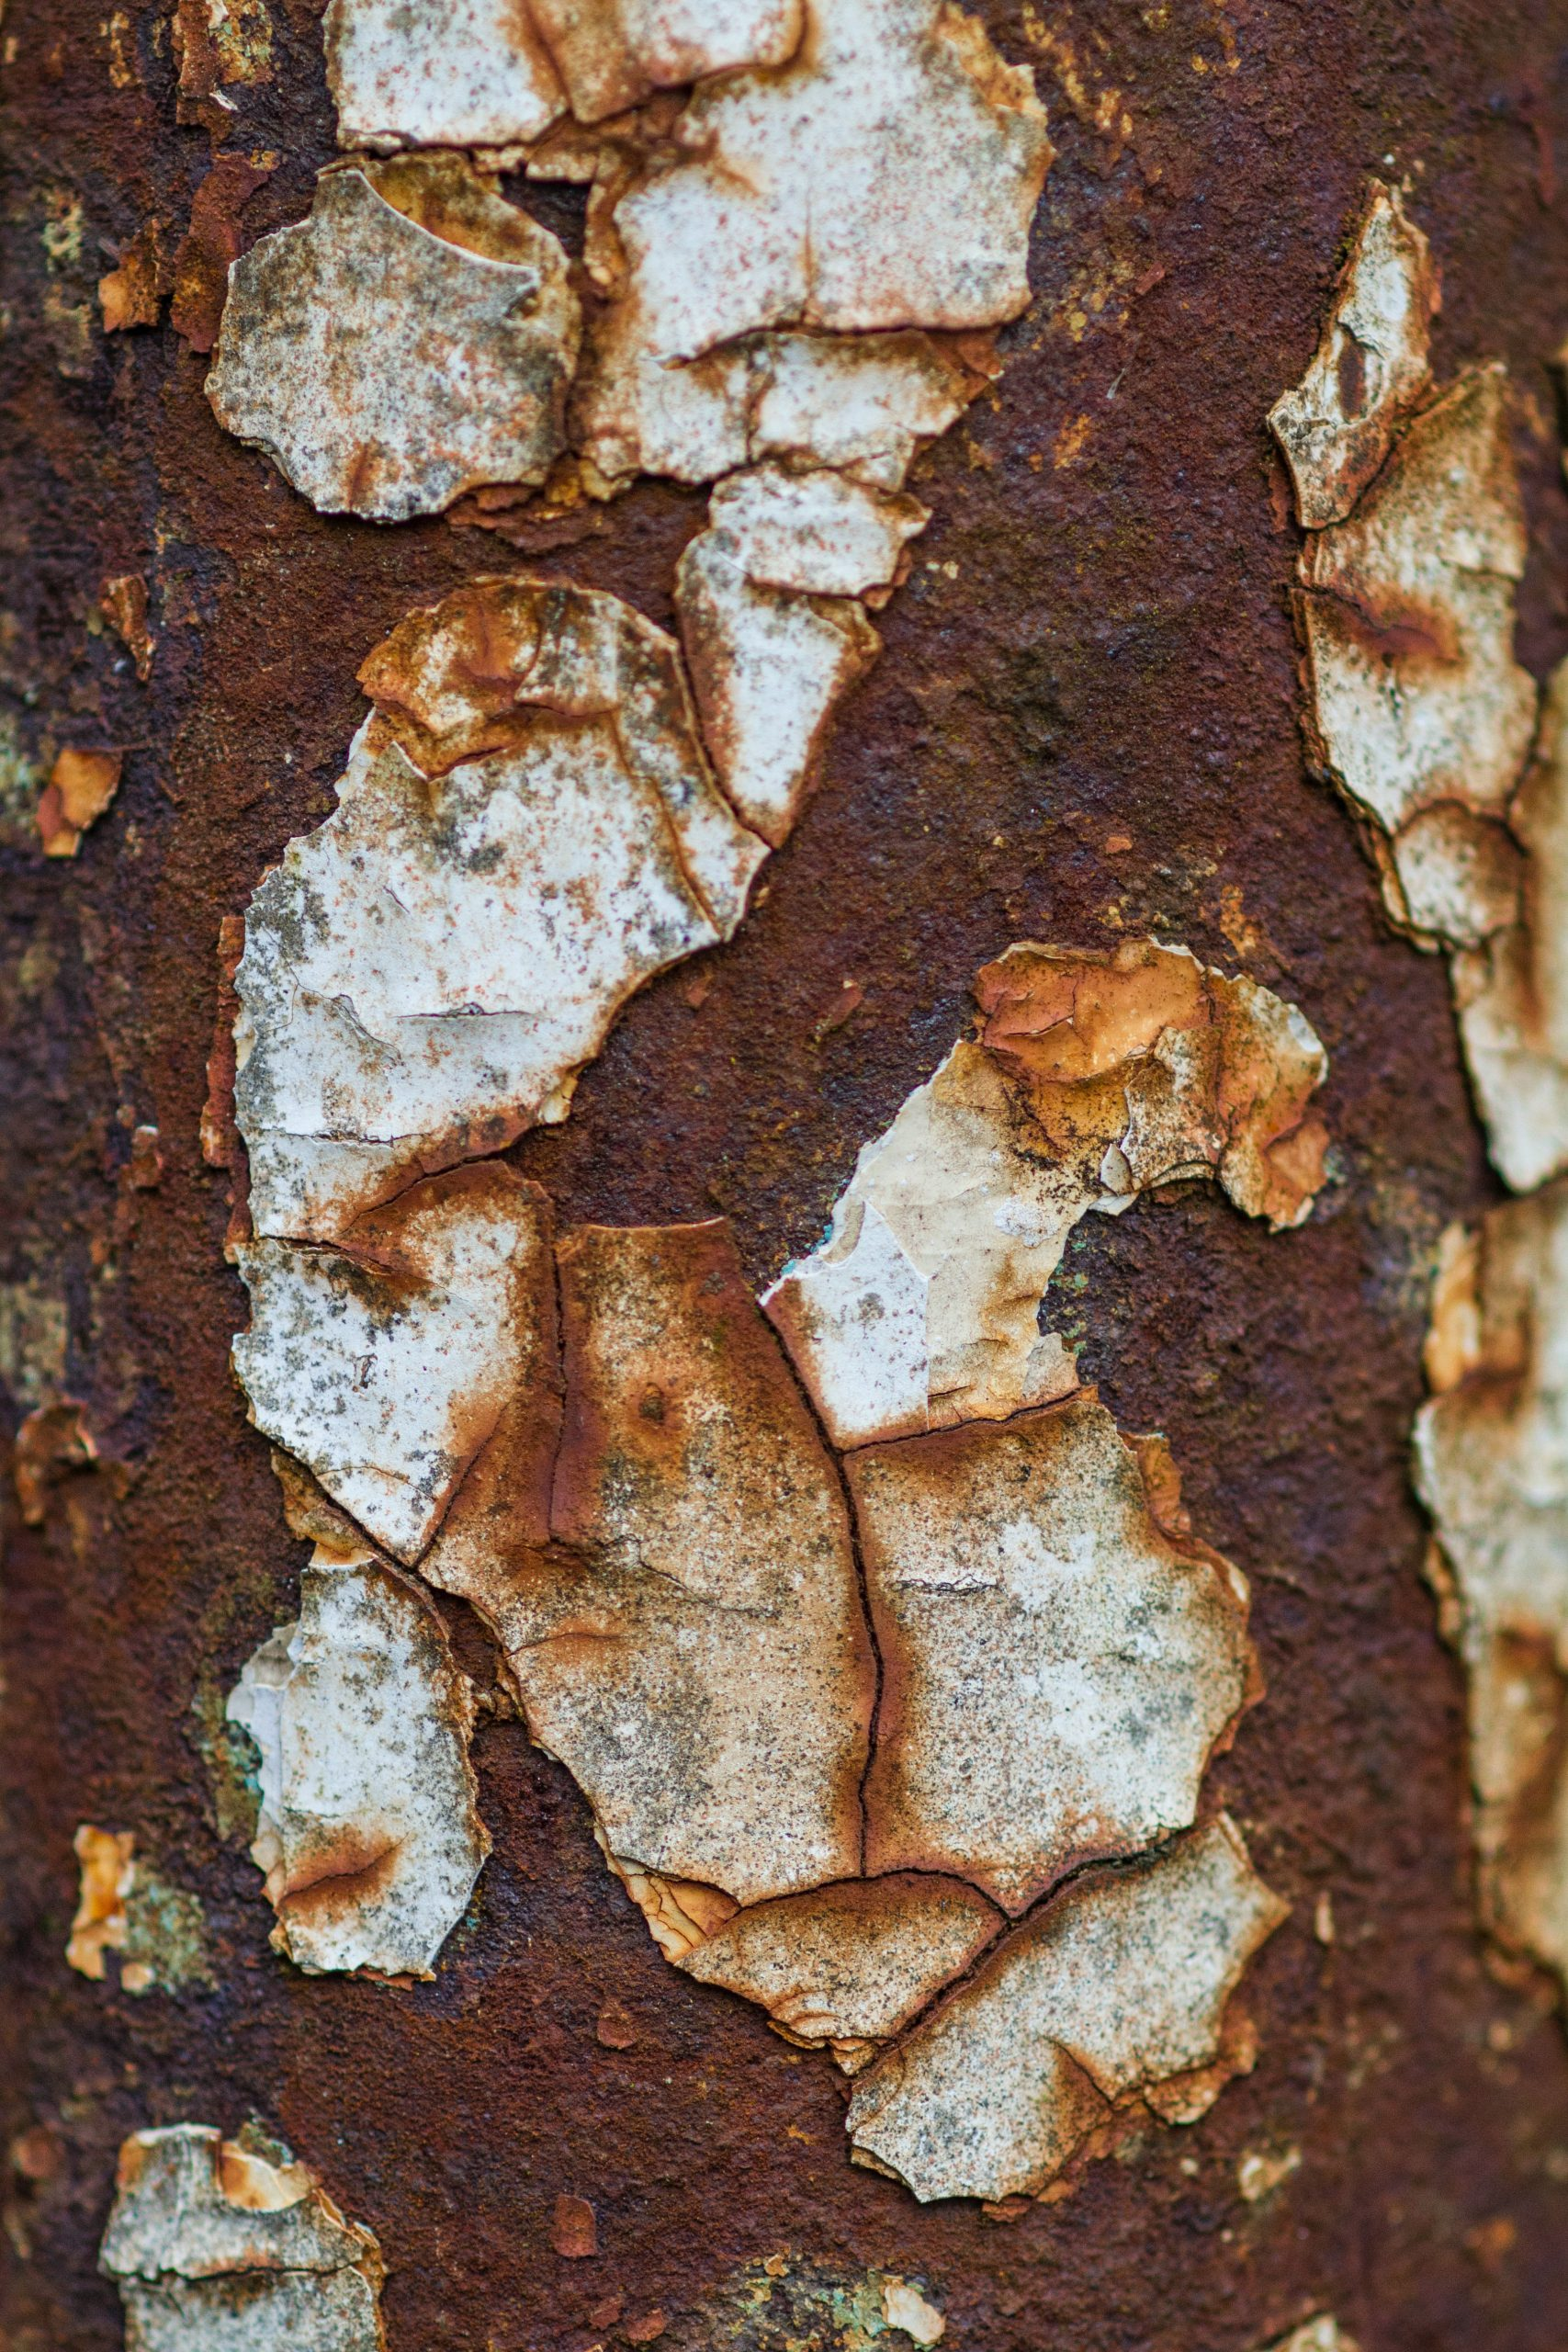 Iron rust removal services